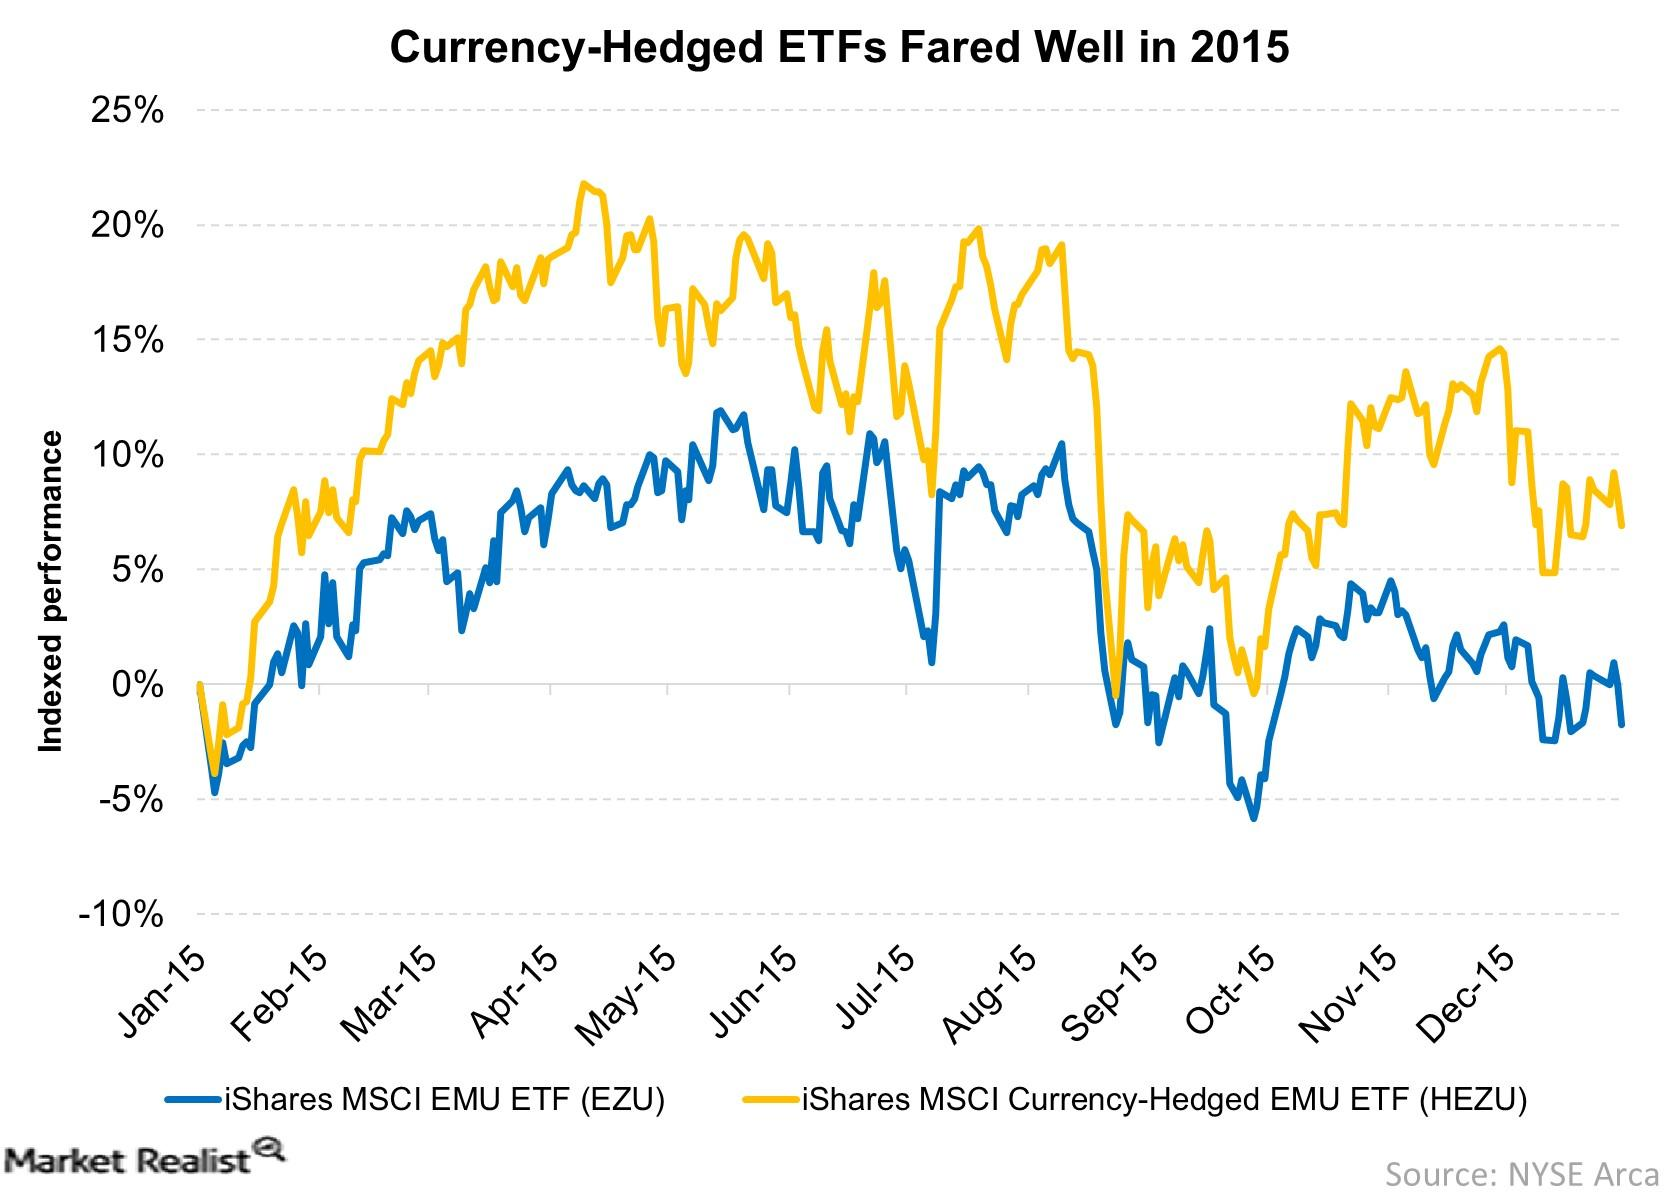 Currency-Hedged ETFs Fared Well